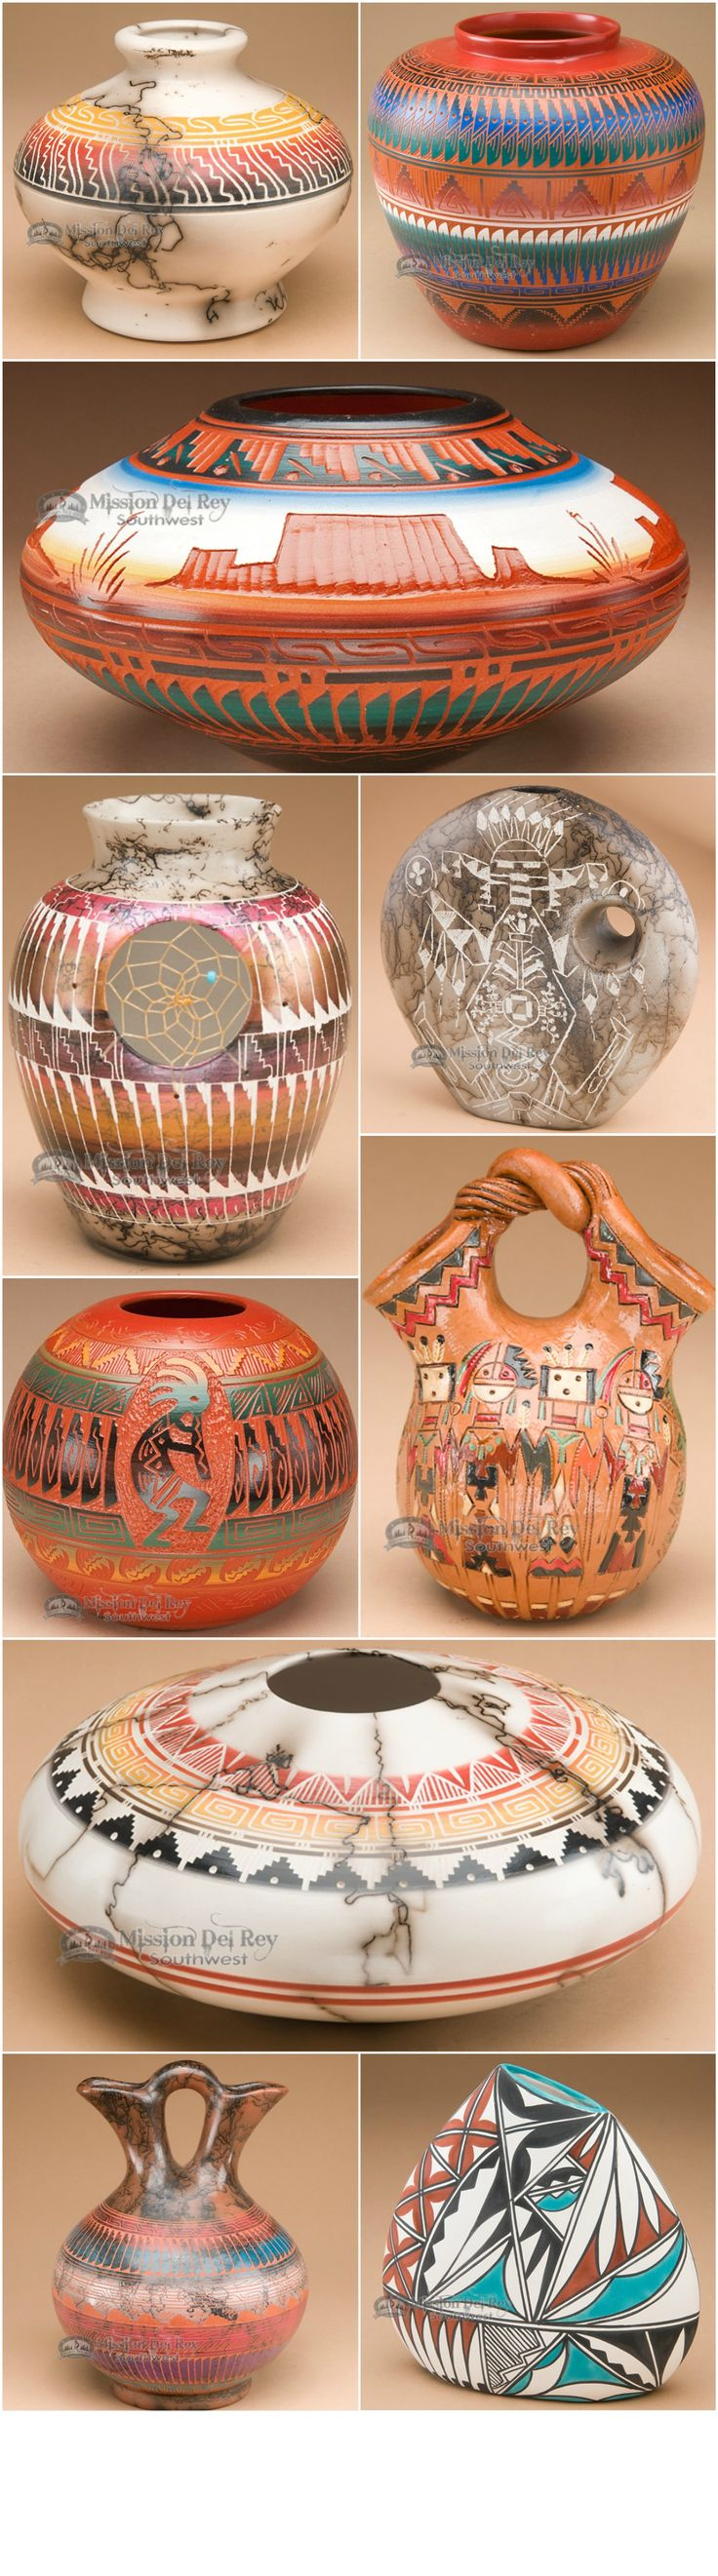 American Indian pottery is very popular among collectors of southwest and western pottery. Each piece of Indian pottery is handcrafted to make a unique piece of southwestern art. Horse hair pottery made by the Navajo Indians is a popular style, but getting harder to find. The wedding vase is also a very significant piece because of what it represents.